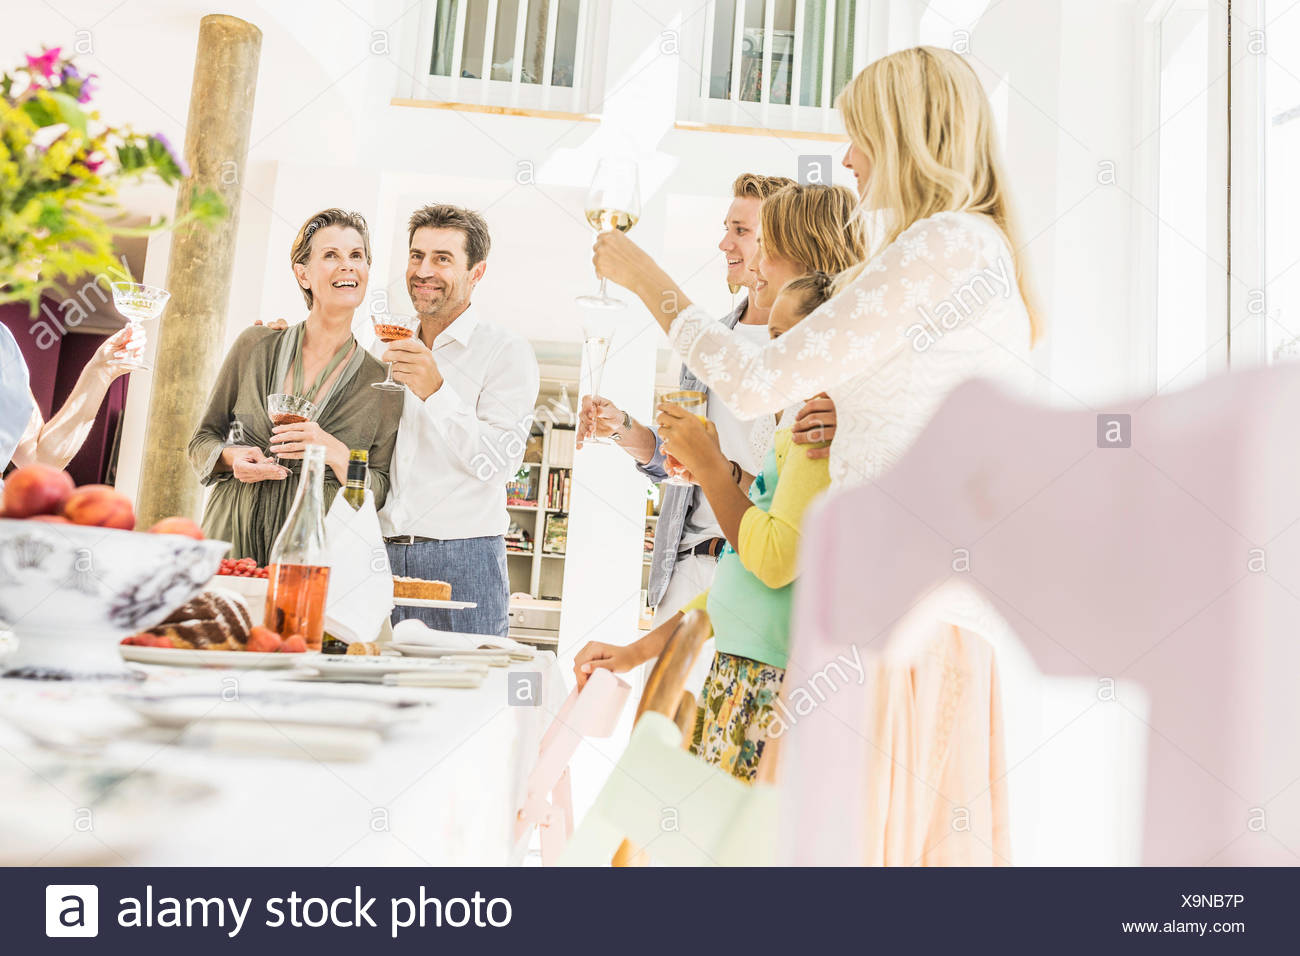 Family raising a toast at dining table - Stock Image